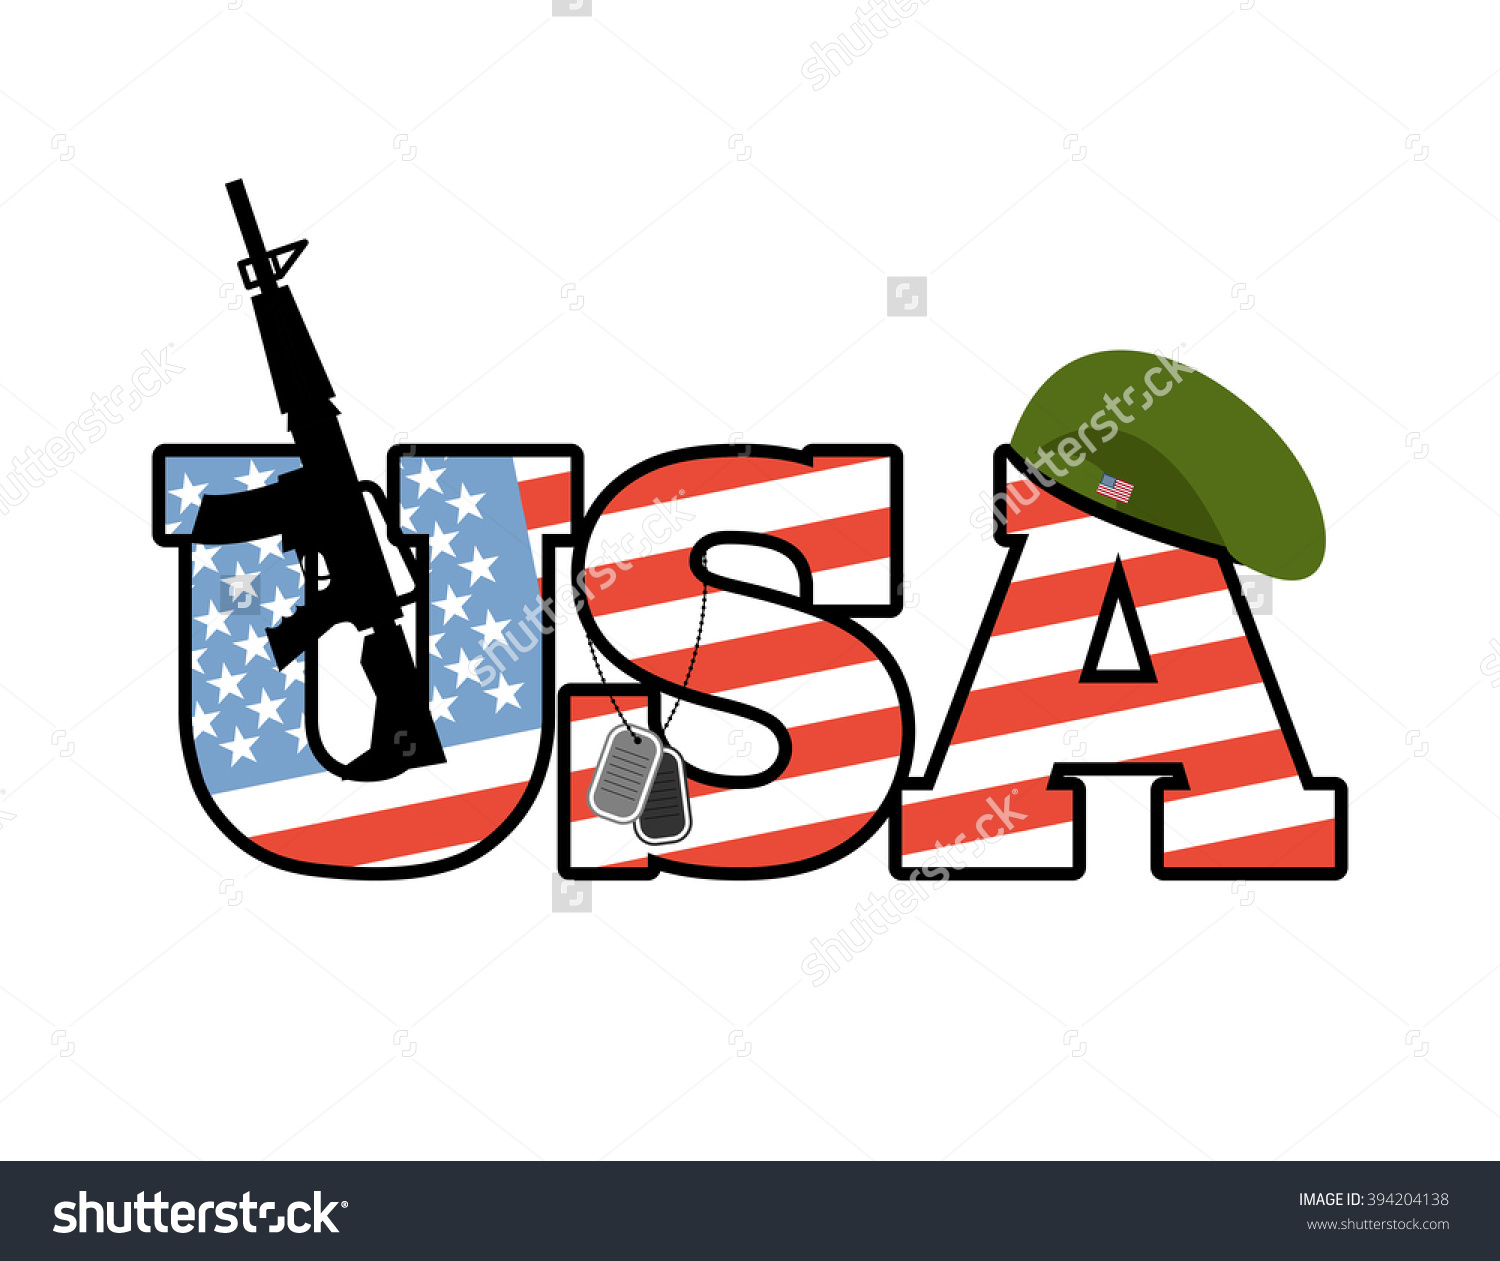 United states flag army clipart vector library stock Us Army Emblem Flag United States Stock Vector 394204138 ... vector library stock